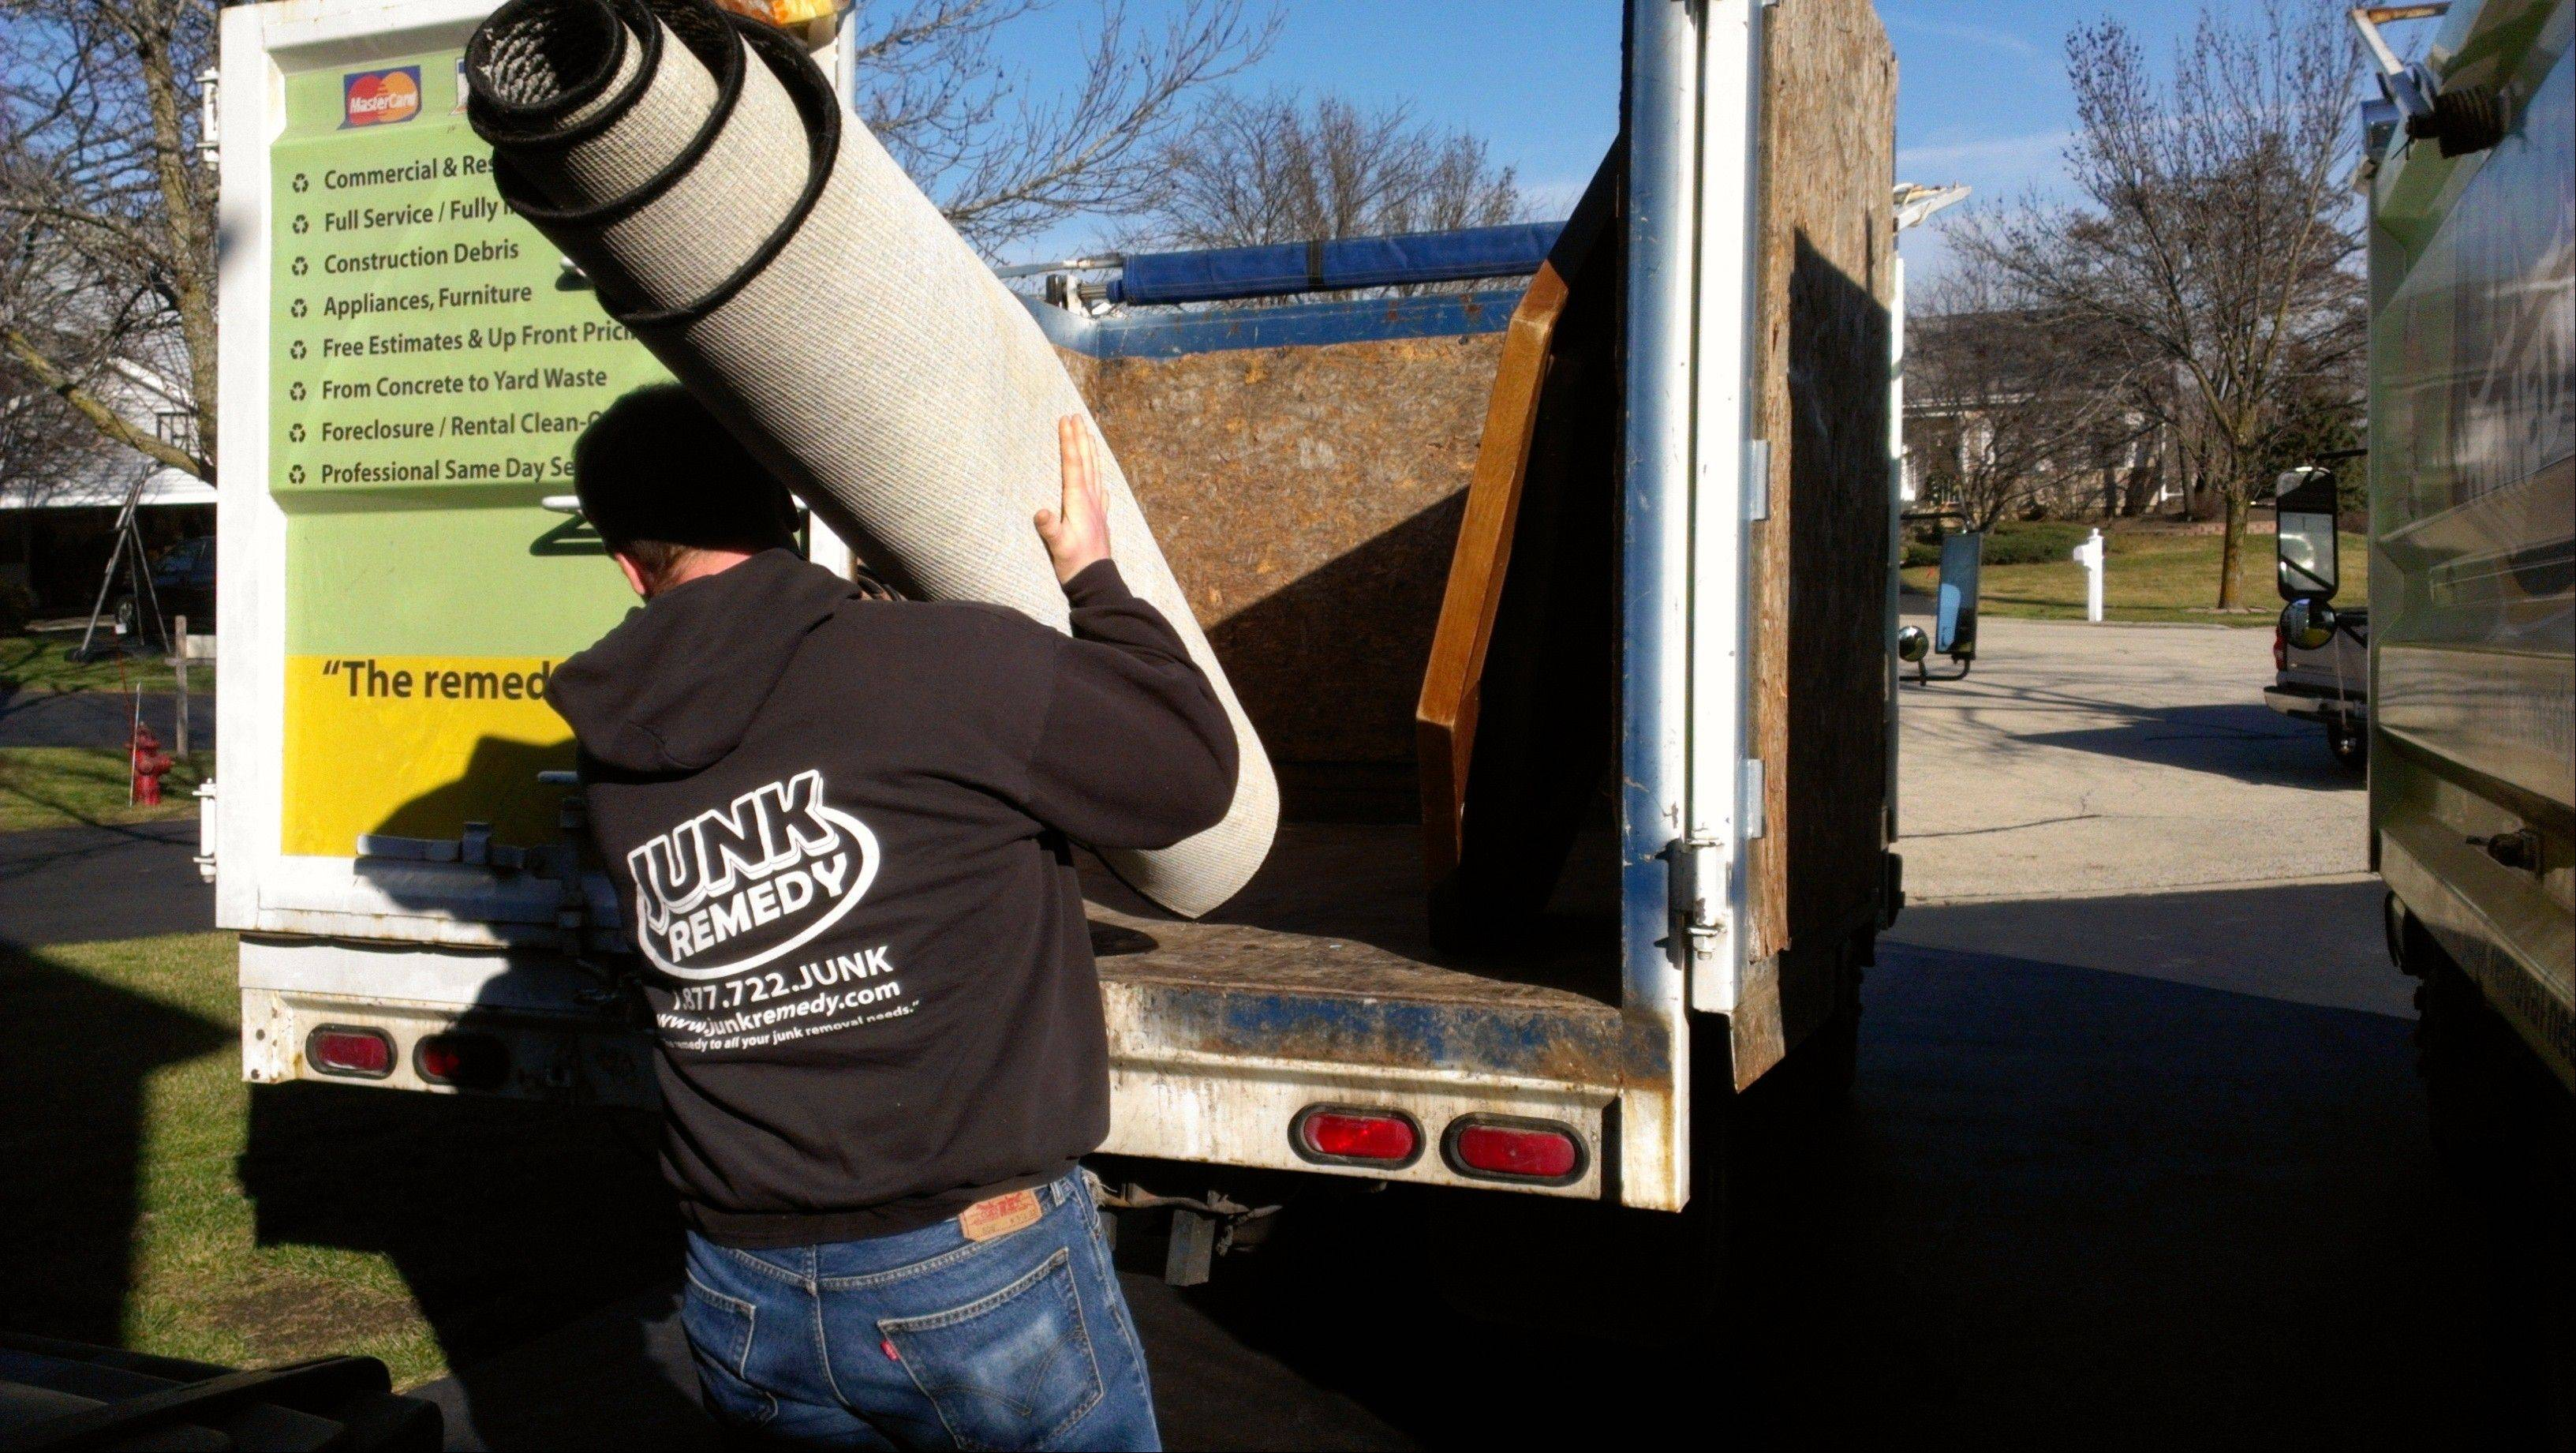 Junk Remedy employee Adam Brehmer hauls off an old carpet as part of a job removing debris.